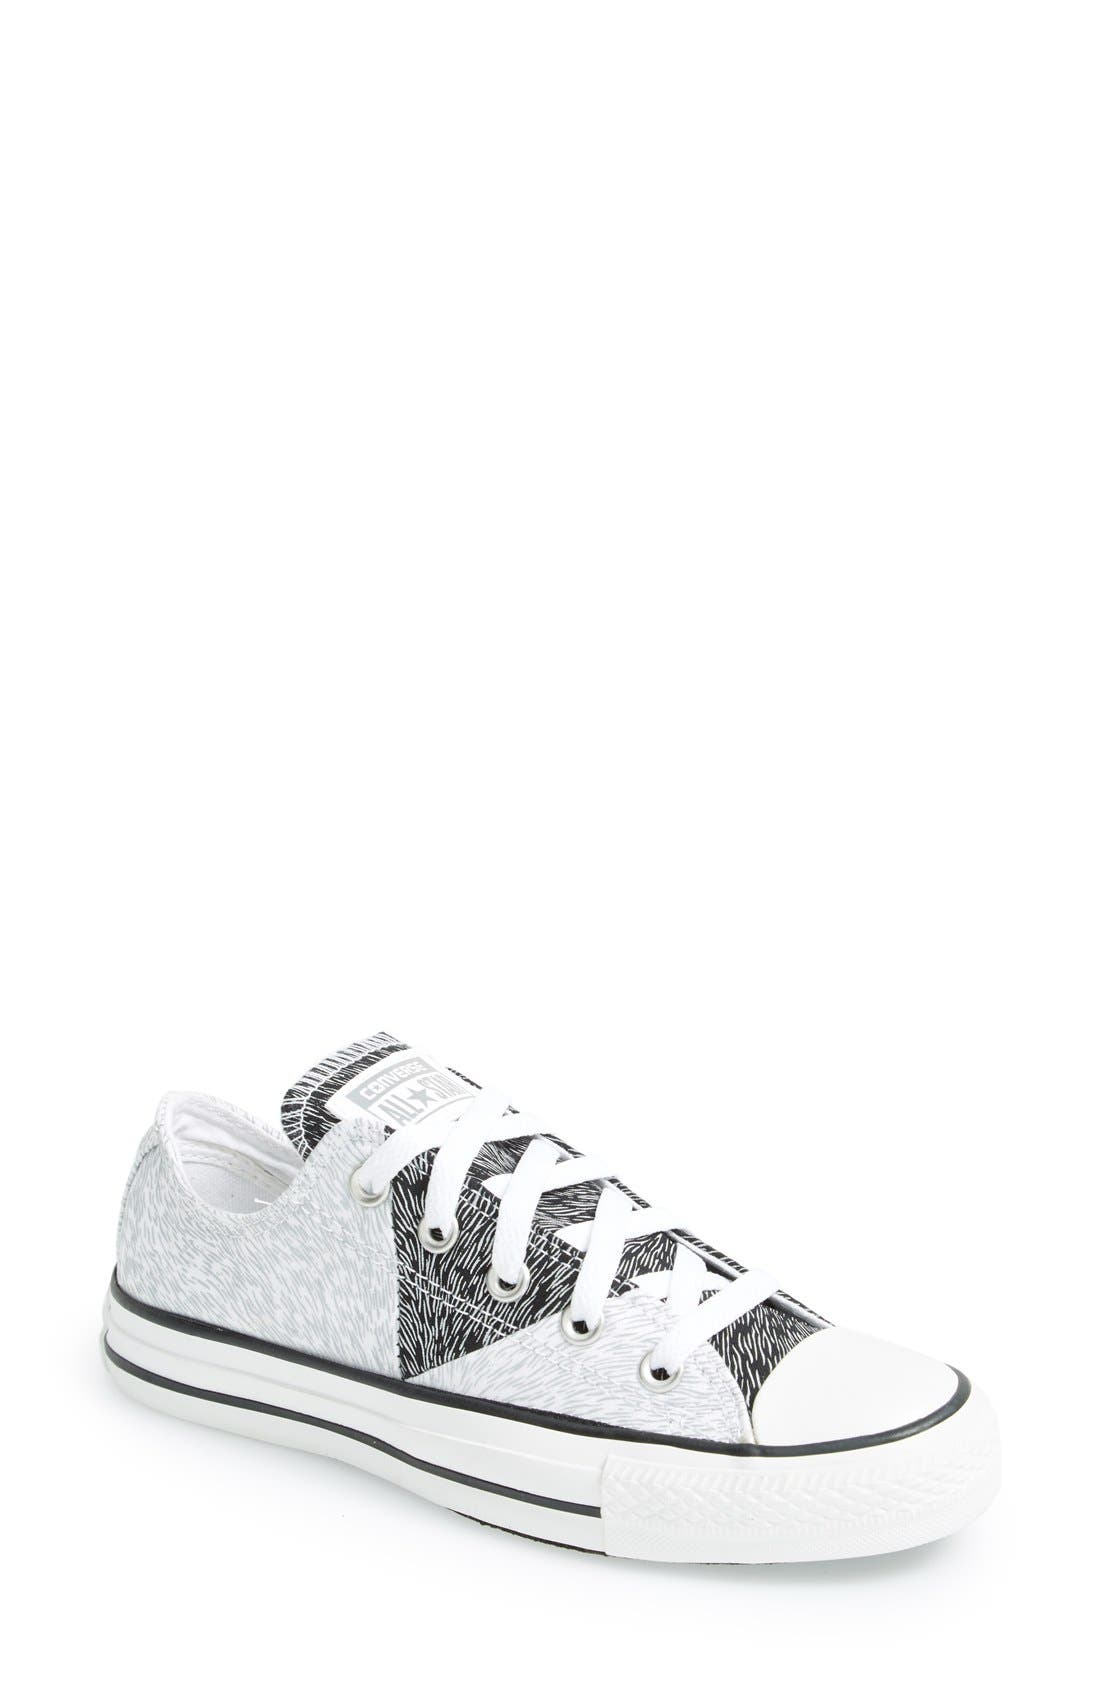 Alternate Image 1 Selected - Converse Chuck Taylor® All Star® 'Animal Reflect' Sneaker (Women)